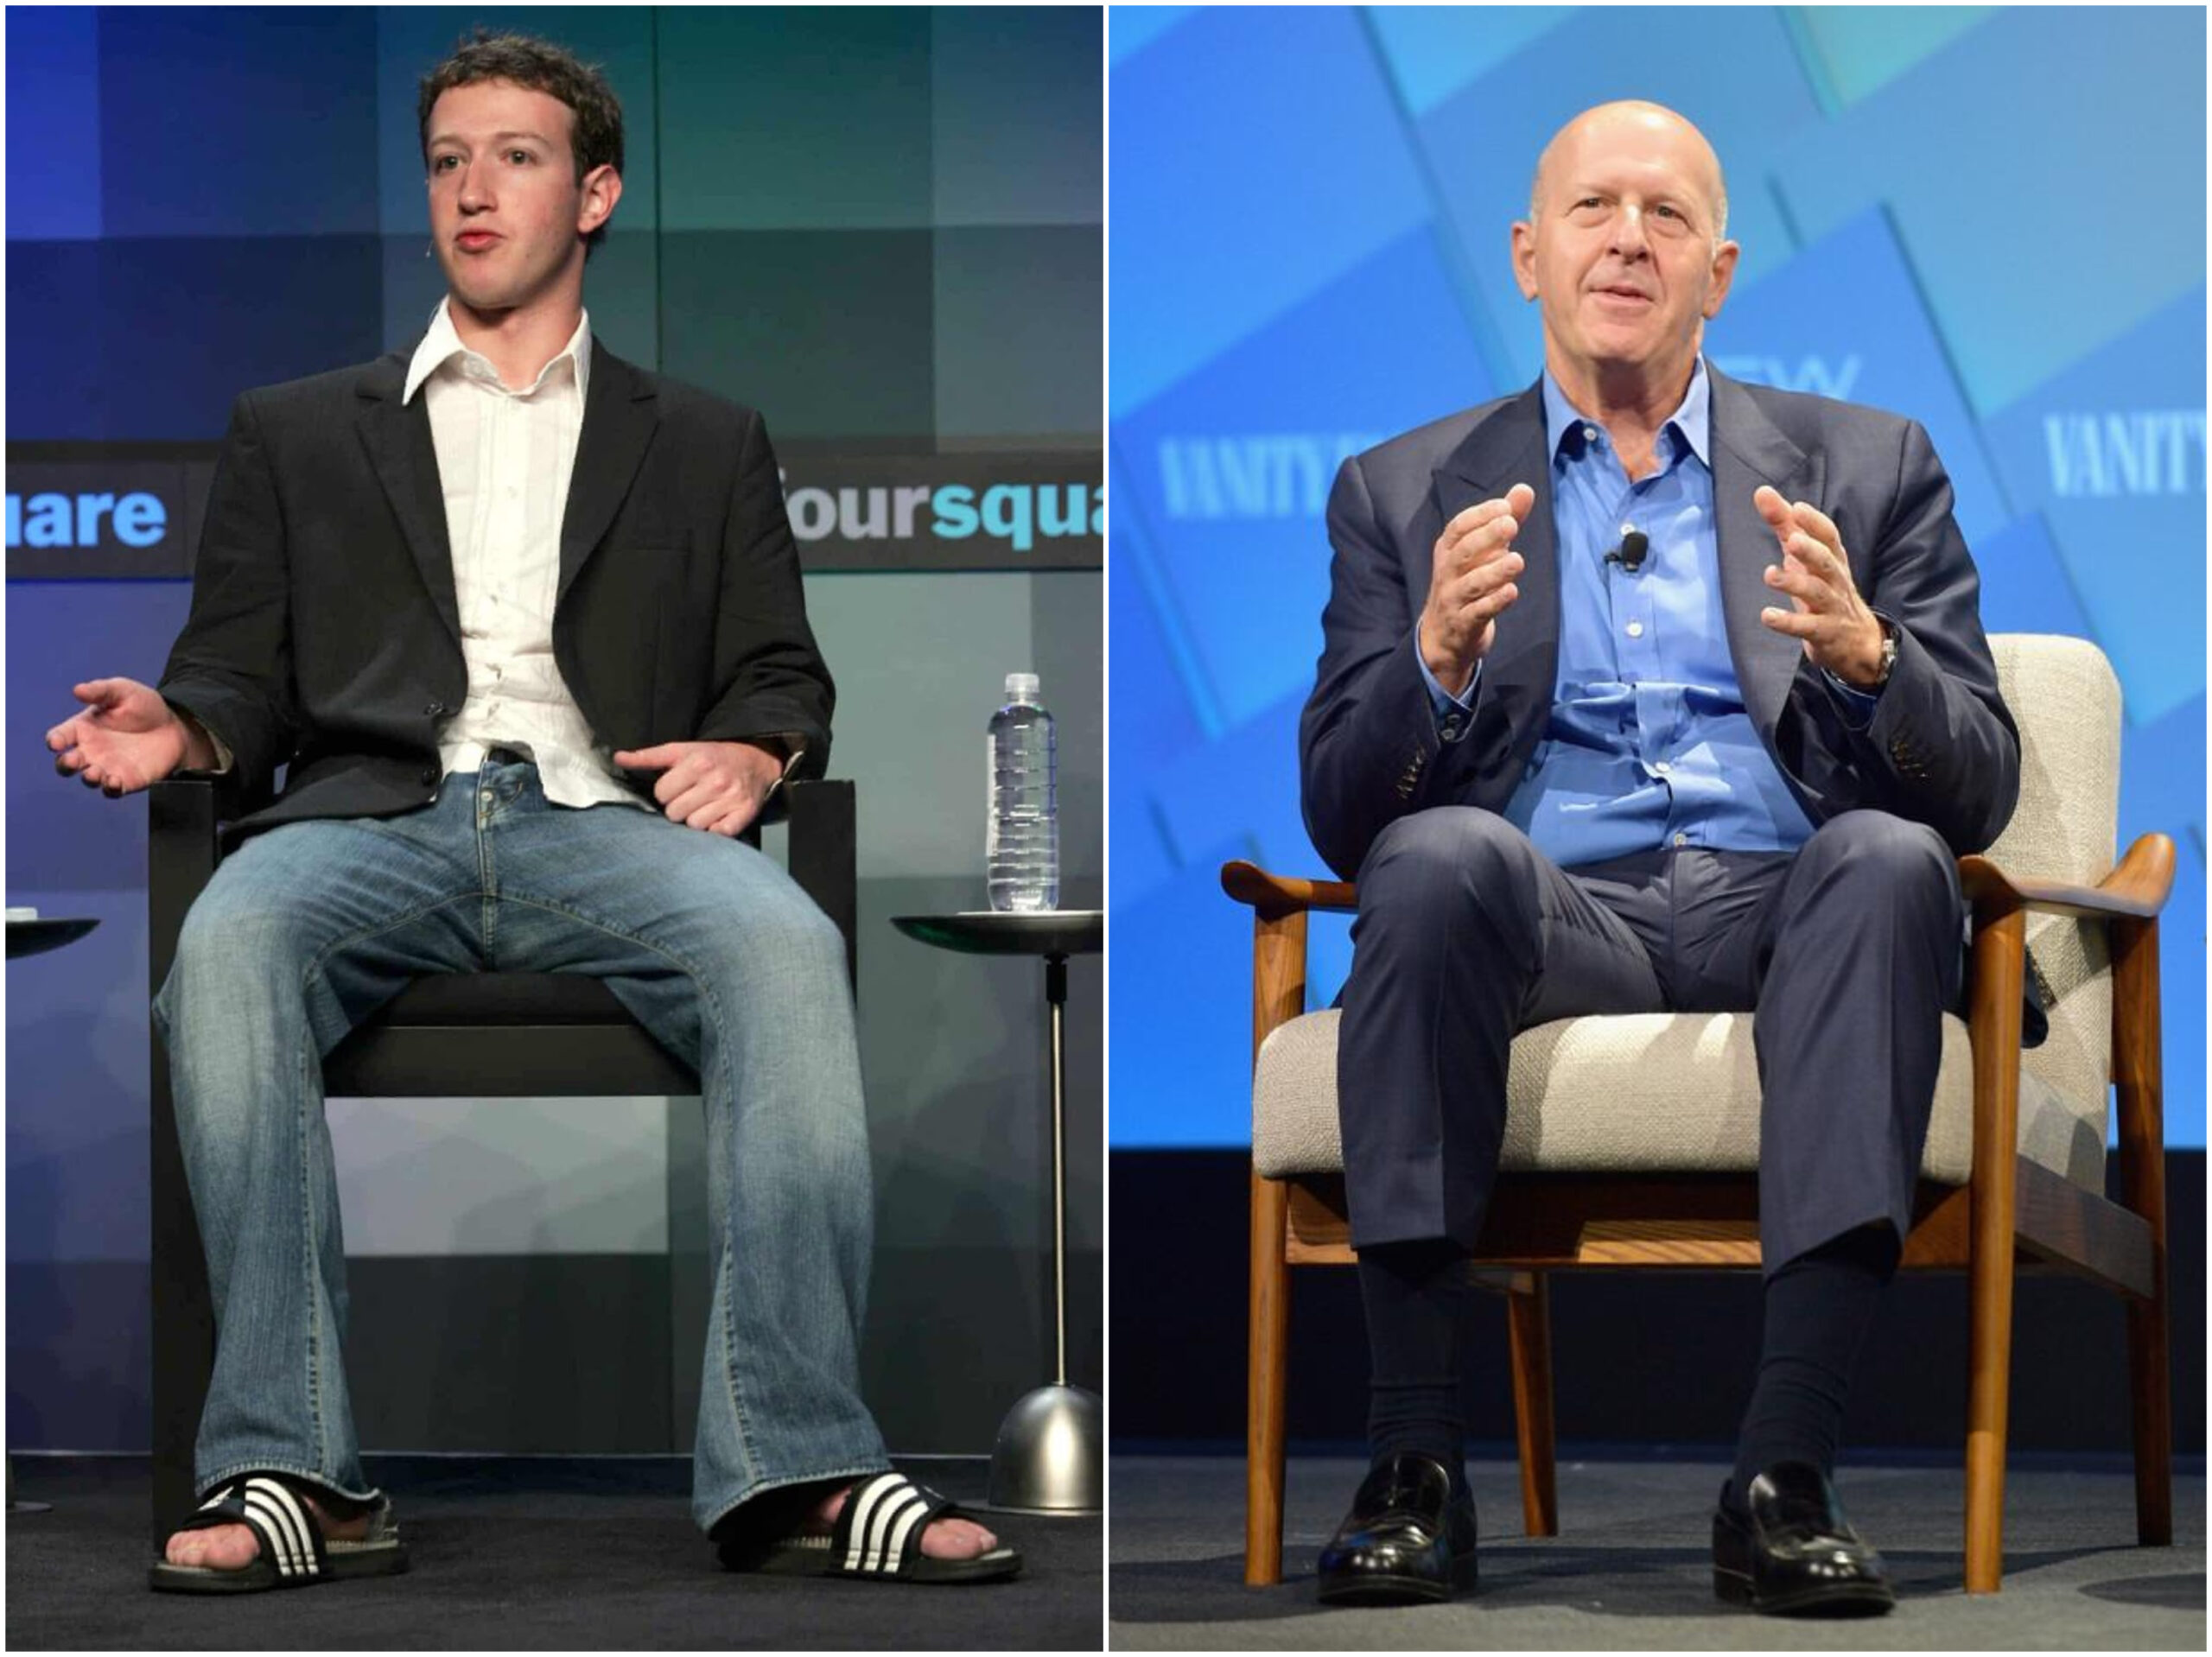 Deux visions du monde s'affrontent : Mark Zuckerberg vs David Solomon.